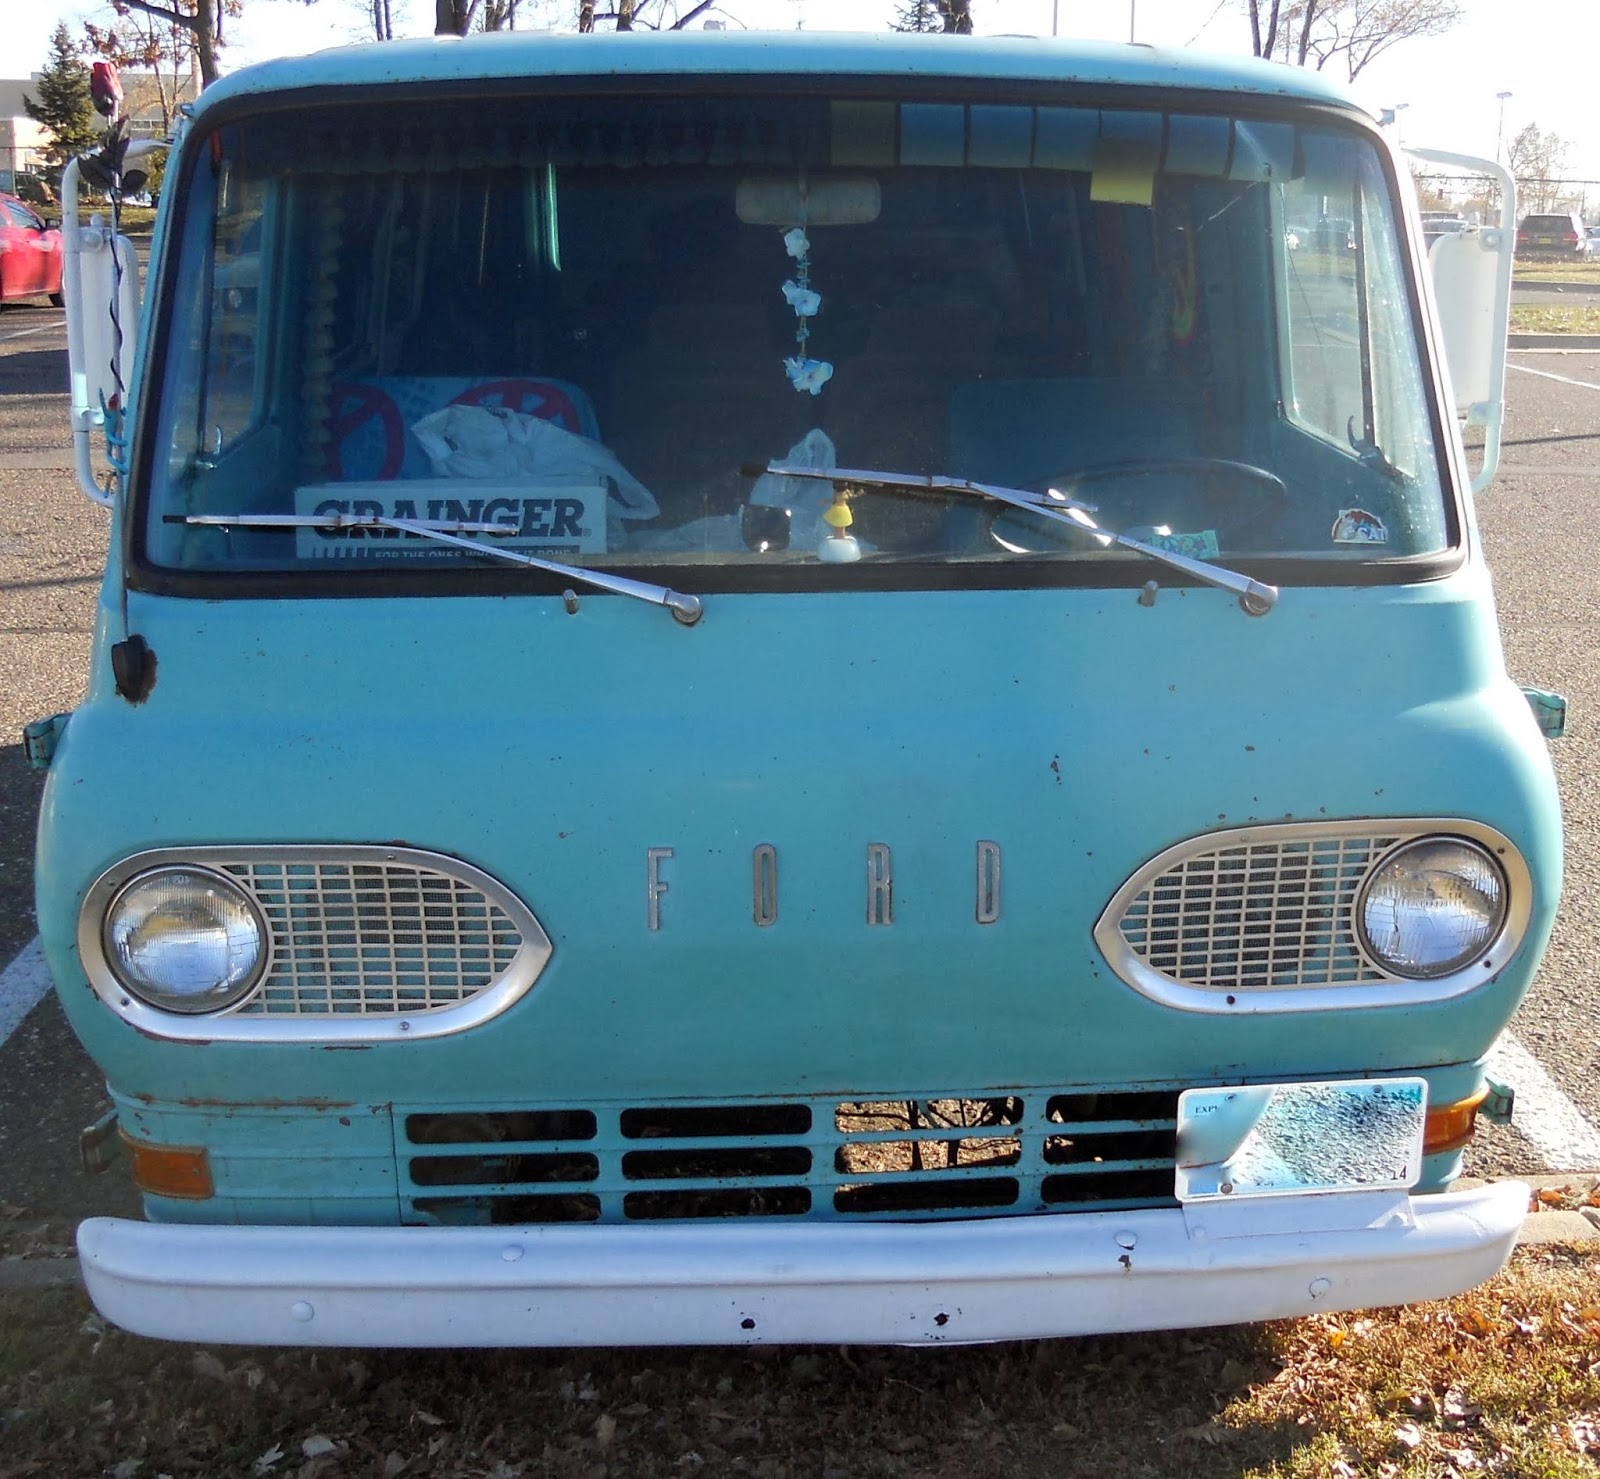 Automozeal February 2014 1961 1967 Ford Econoline Parts These Two Are The Original Generation Of E Series Or Vans Though Notably Smaller Than Massive Vehicles That